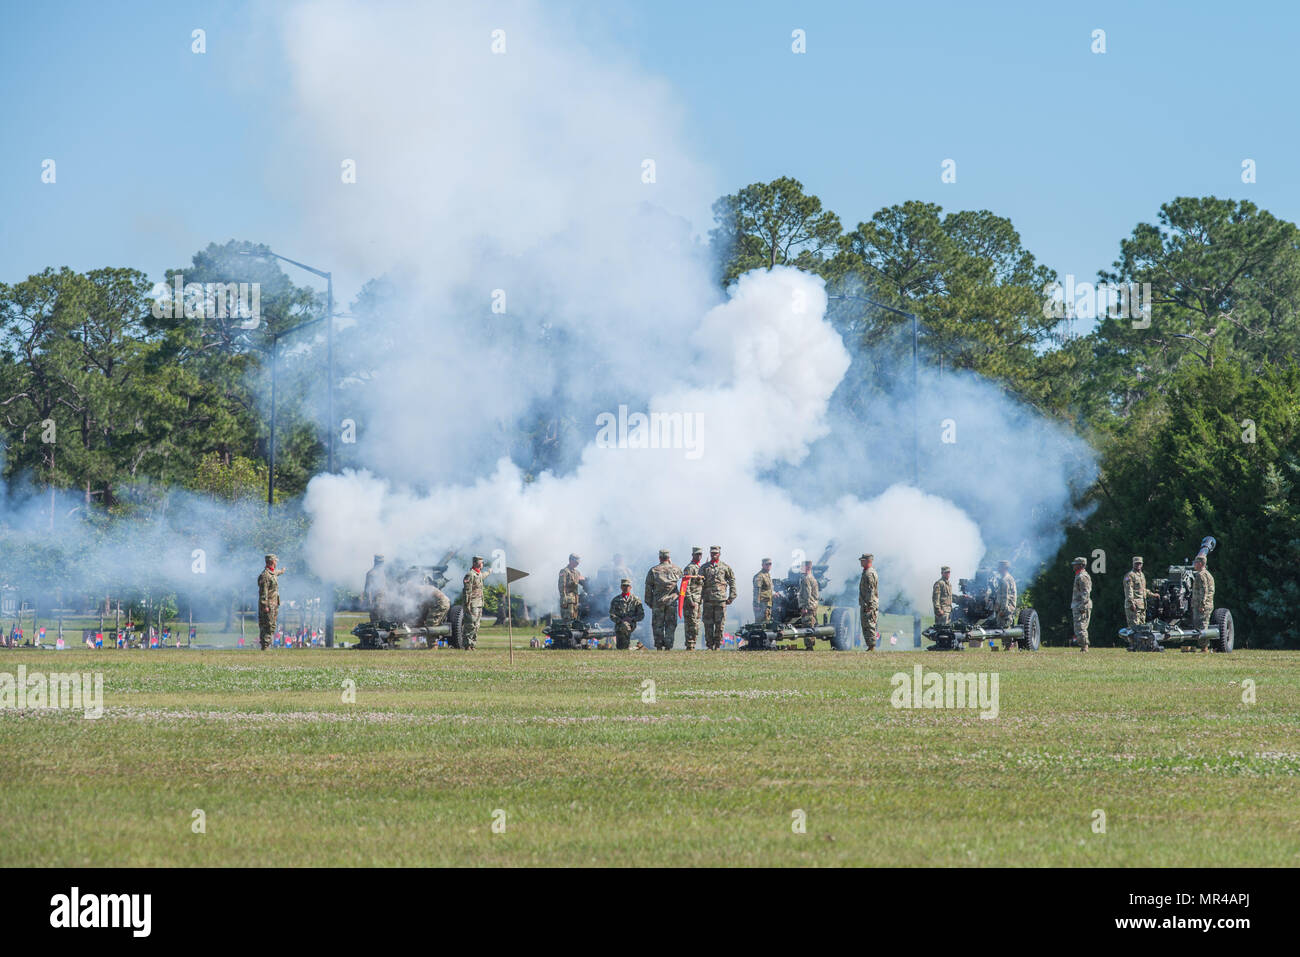 Soldiers of 3rd Infantry Division Artillery conduct a cannon salute during the 3rd Infantry Division change of command ceremony. The 3rd Infantry Division change of command ceremony was held on Cotrell Field at Fort Stewart, GA, May 8, 2017. (U.S. Army Photo by Lt. Col. Brian J. Fickel) - Stock Image